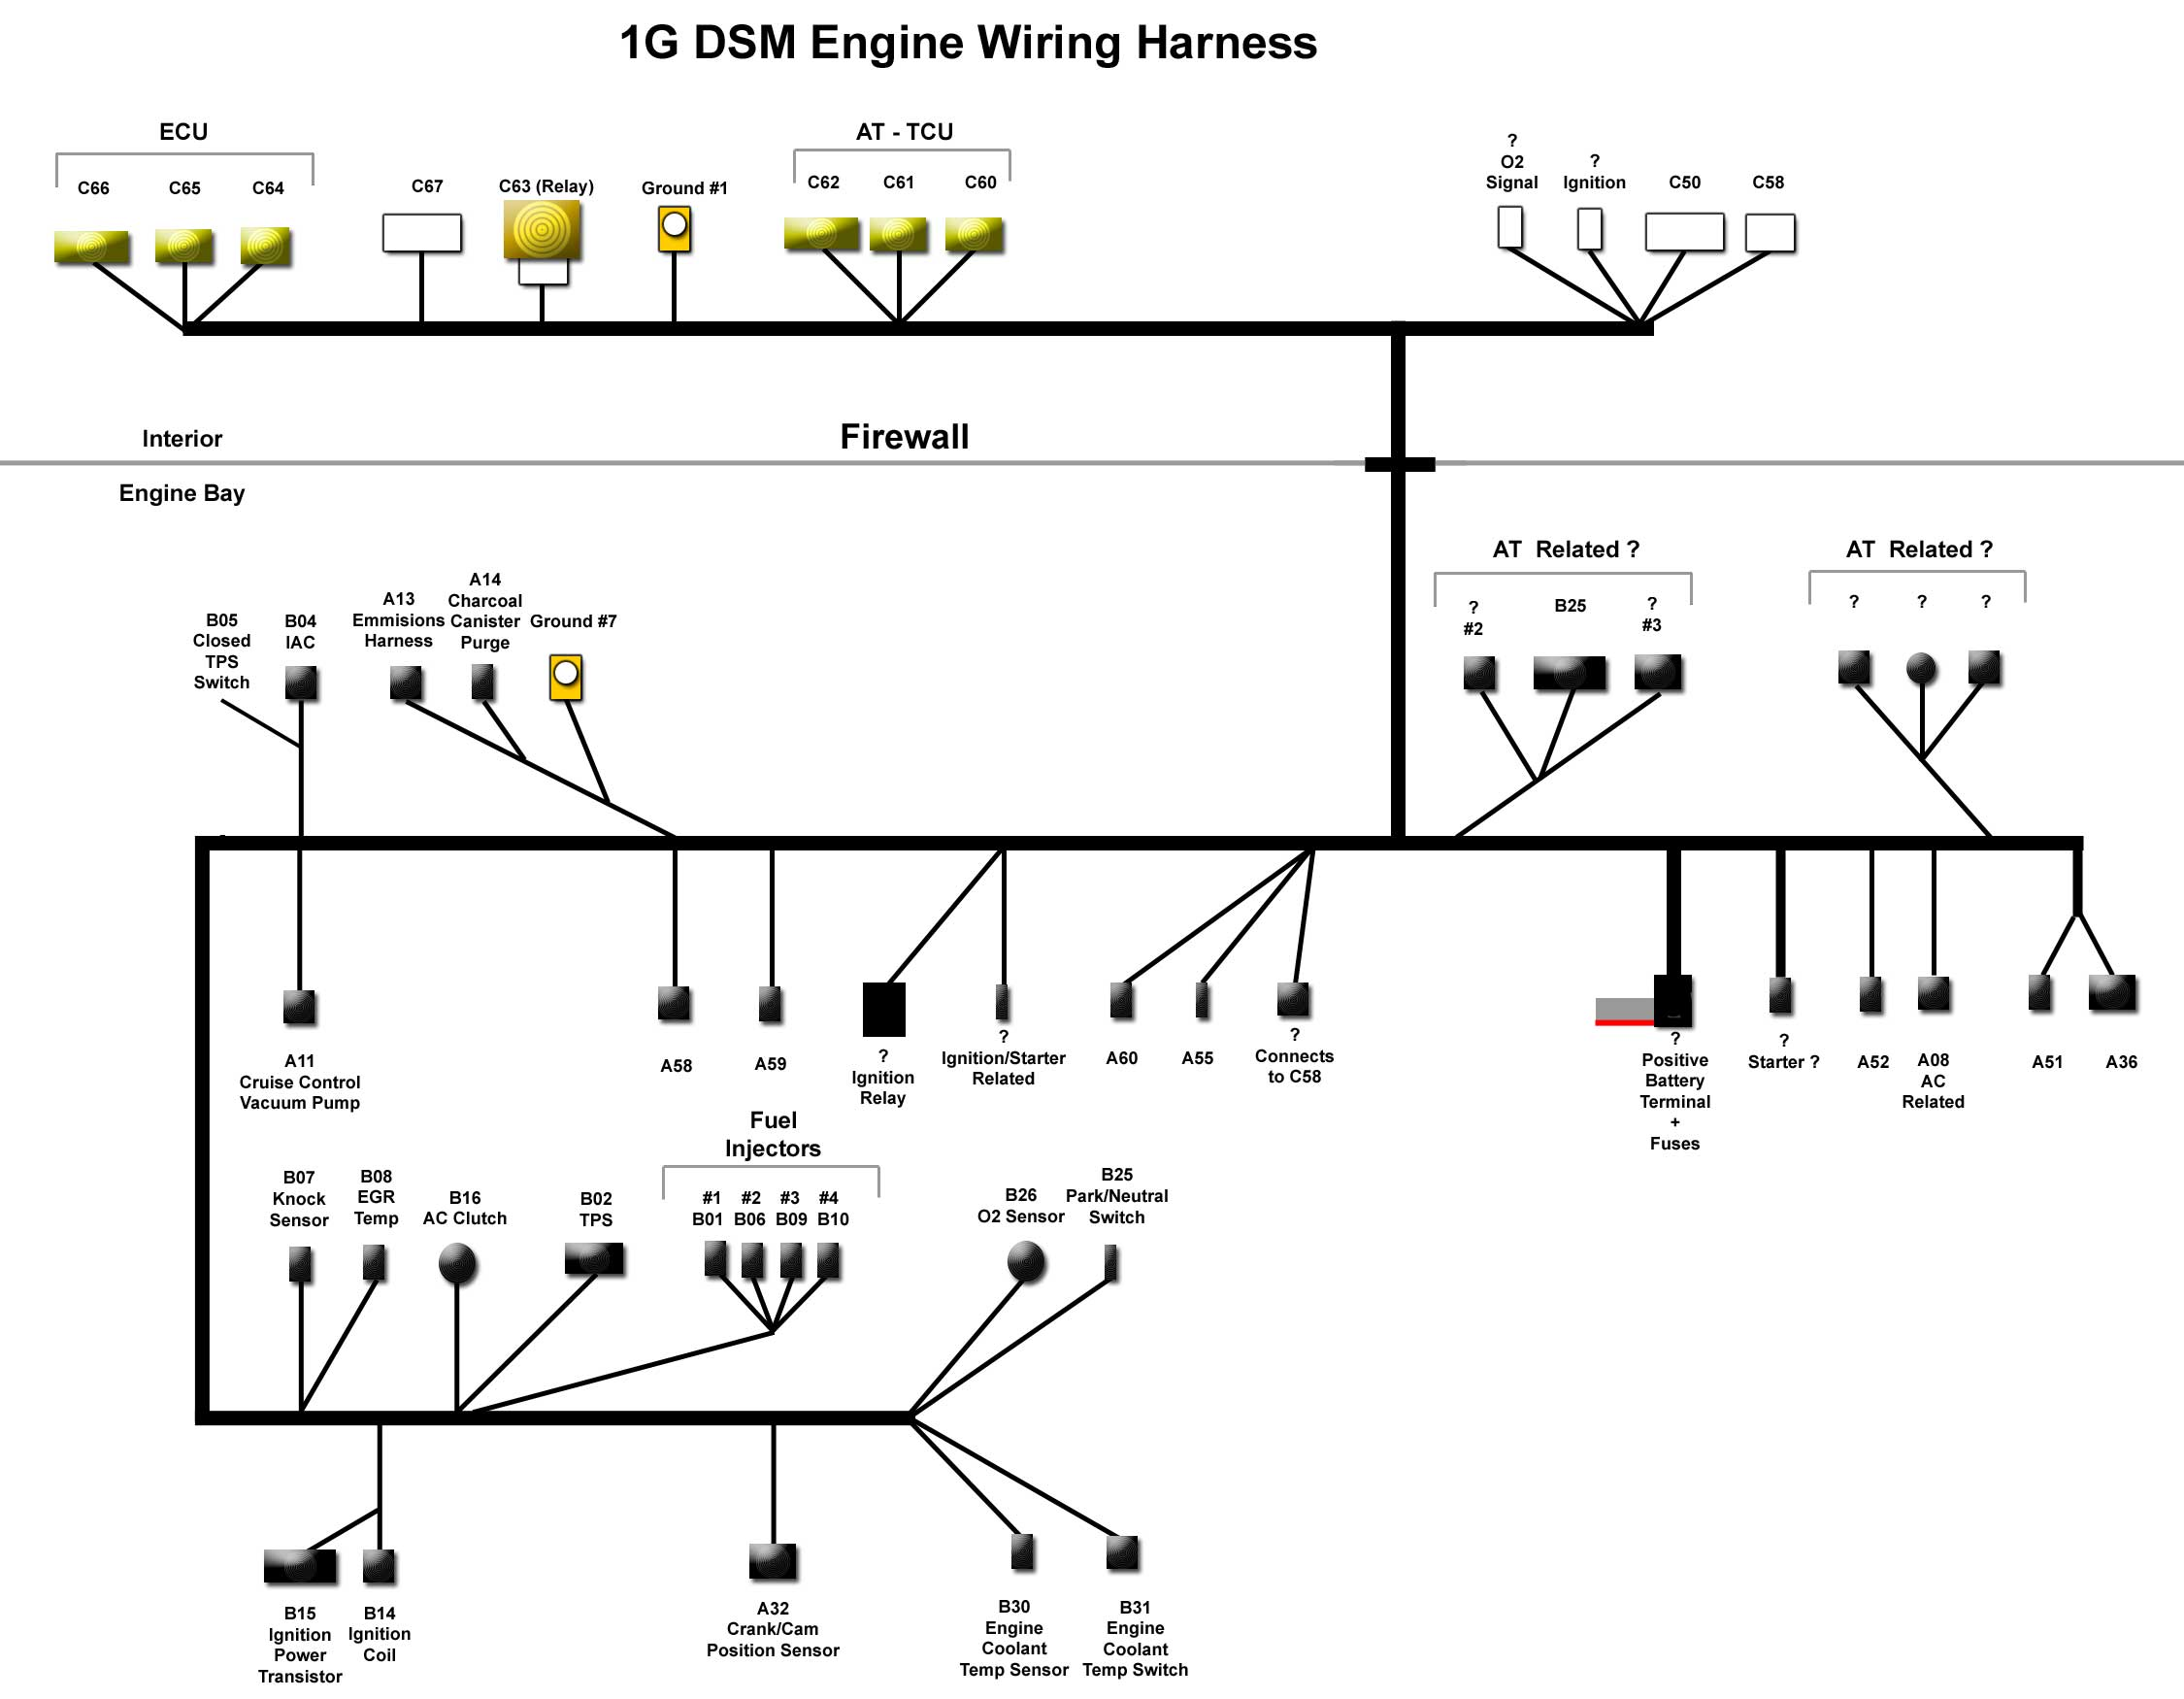 Showthread likewise D17a2 Wiring Harness together with 4 Wiring Harness Diagram likewise 1g Dsm Ecu Wiring Diagram furthermore 1g Dsm Wiring Harness Diagram. on 2g dsm ecu wiring diagram